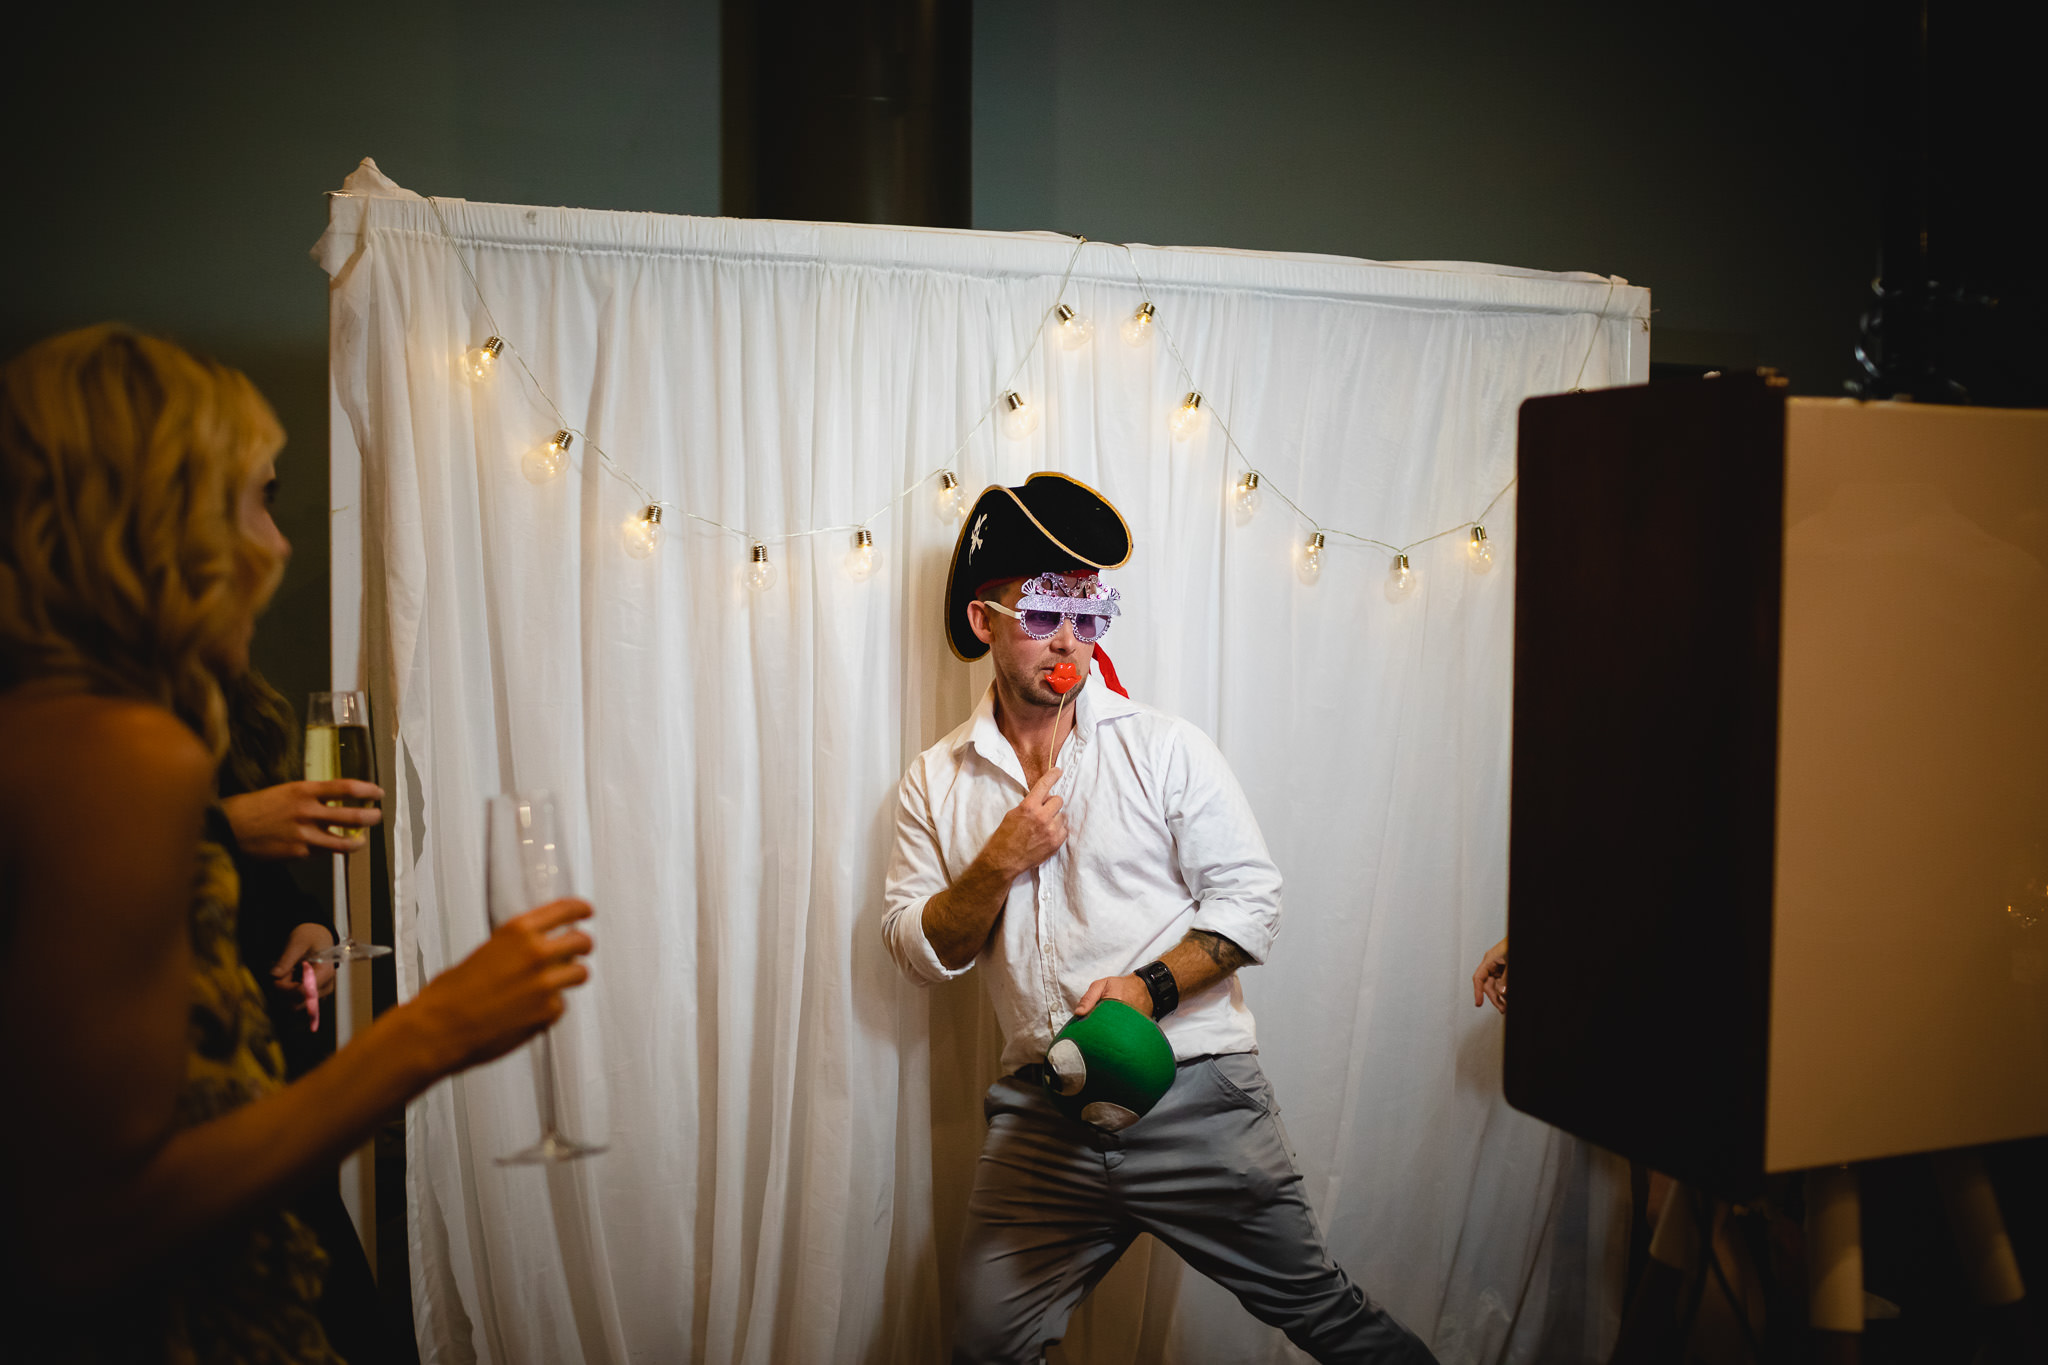 guest with pirate costume posing in front of photo booth at a wedding